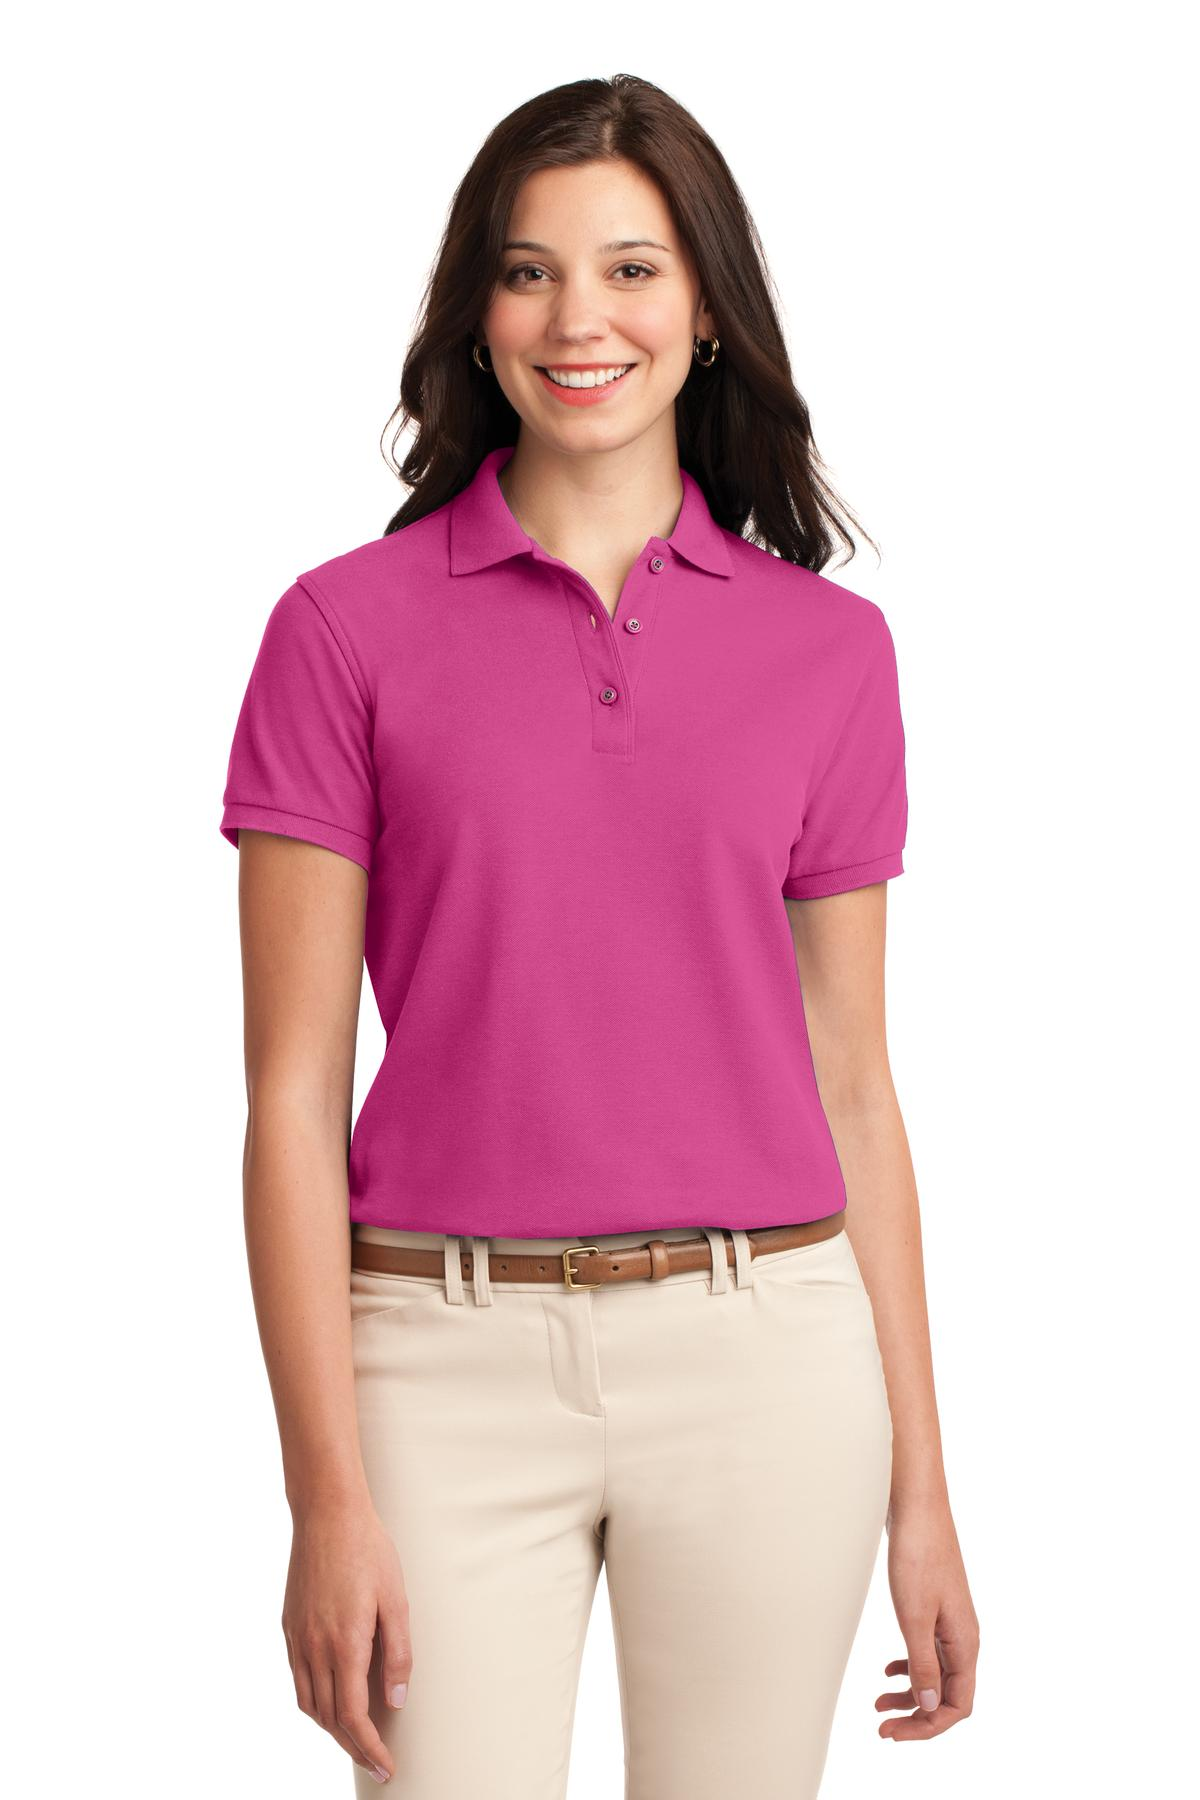 Ultramarine Blue Port Authority Ladies Silk Touch Polo.